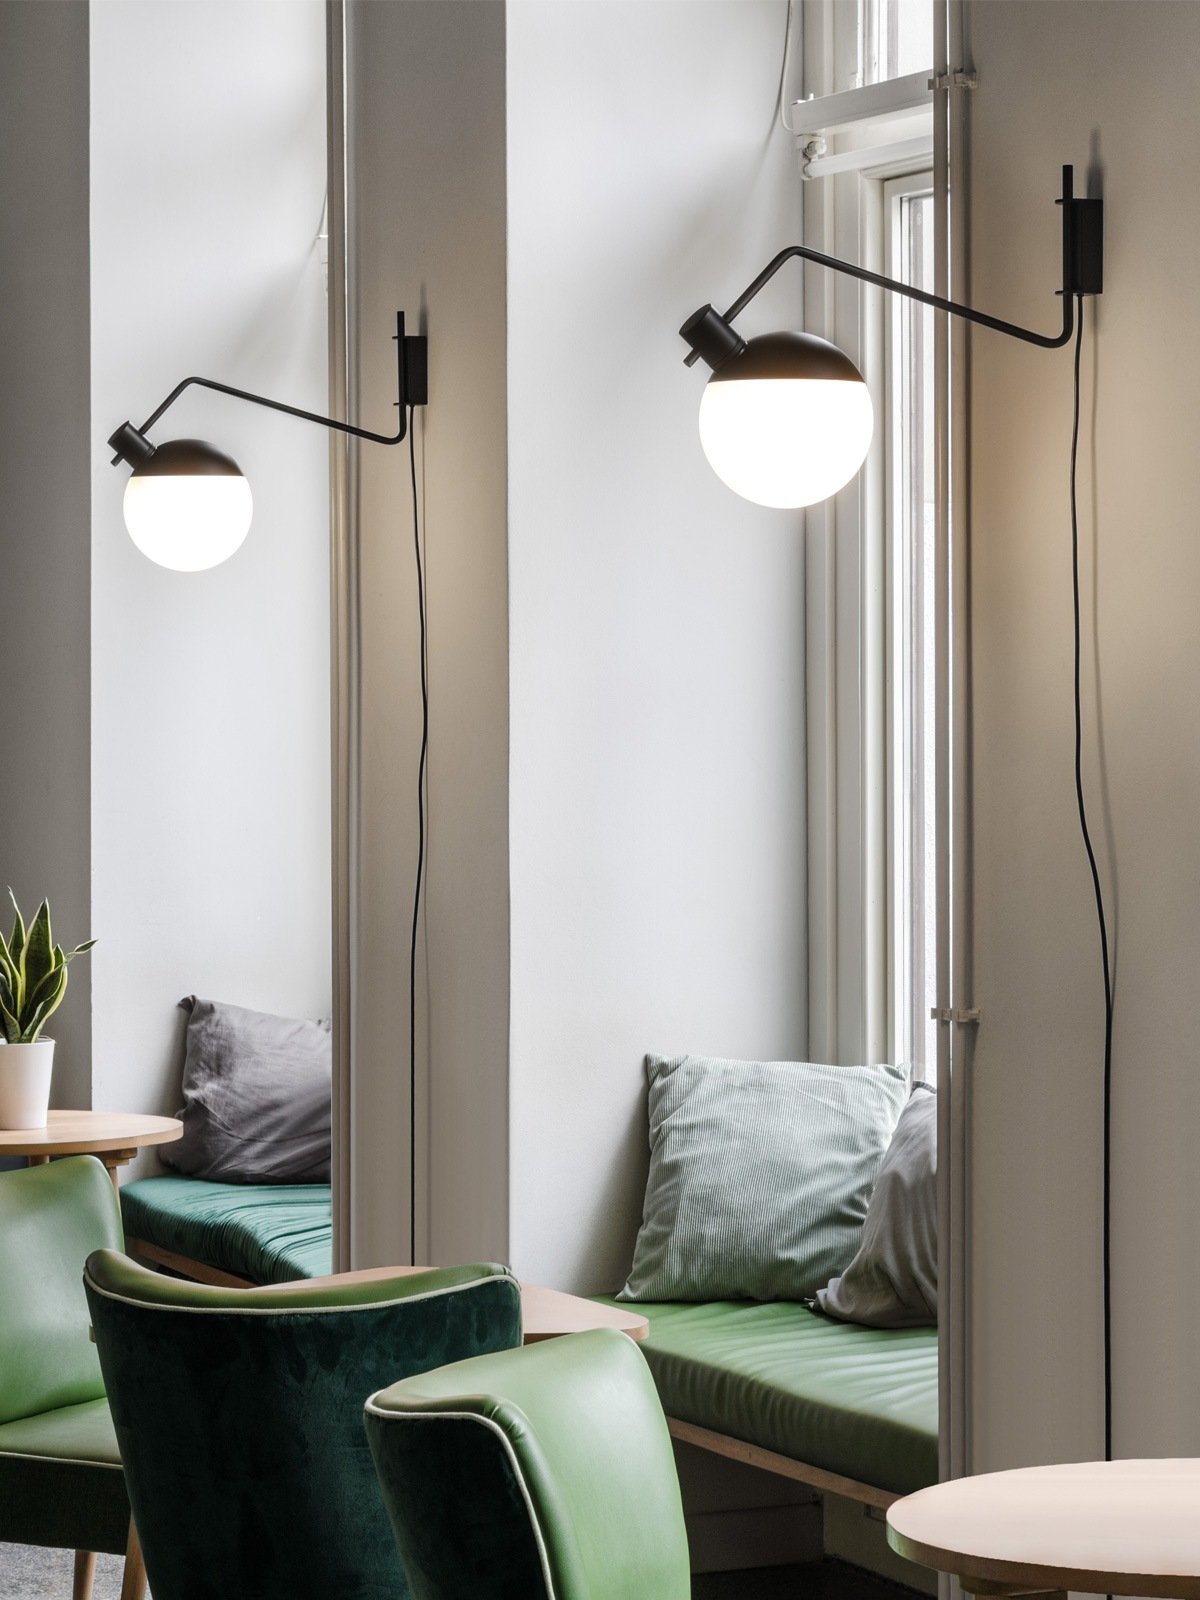 Grupa Baluna Wall Medium Lampe Berlin DesignOrt Onlineshop